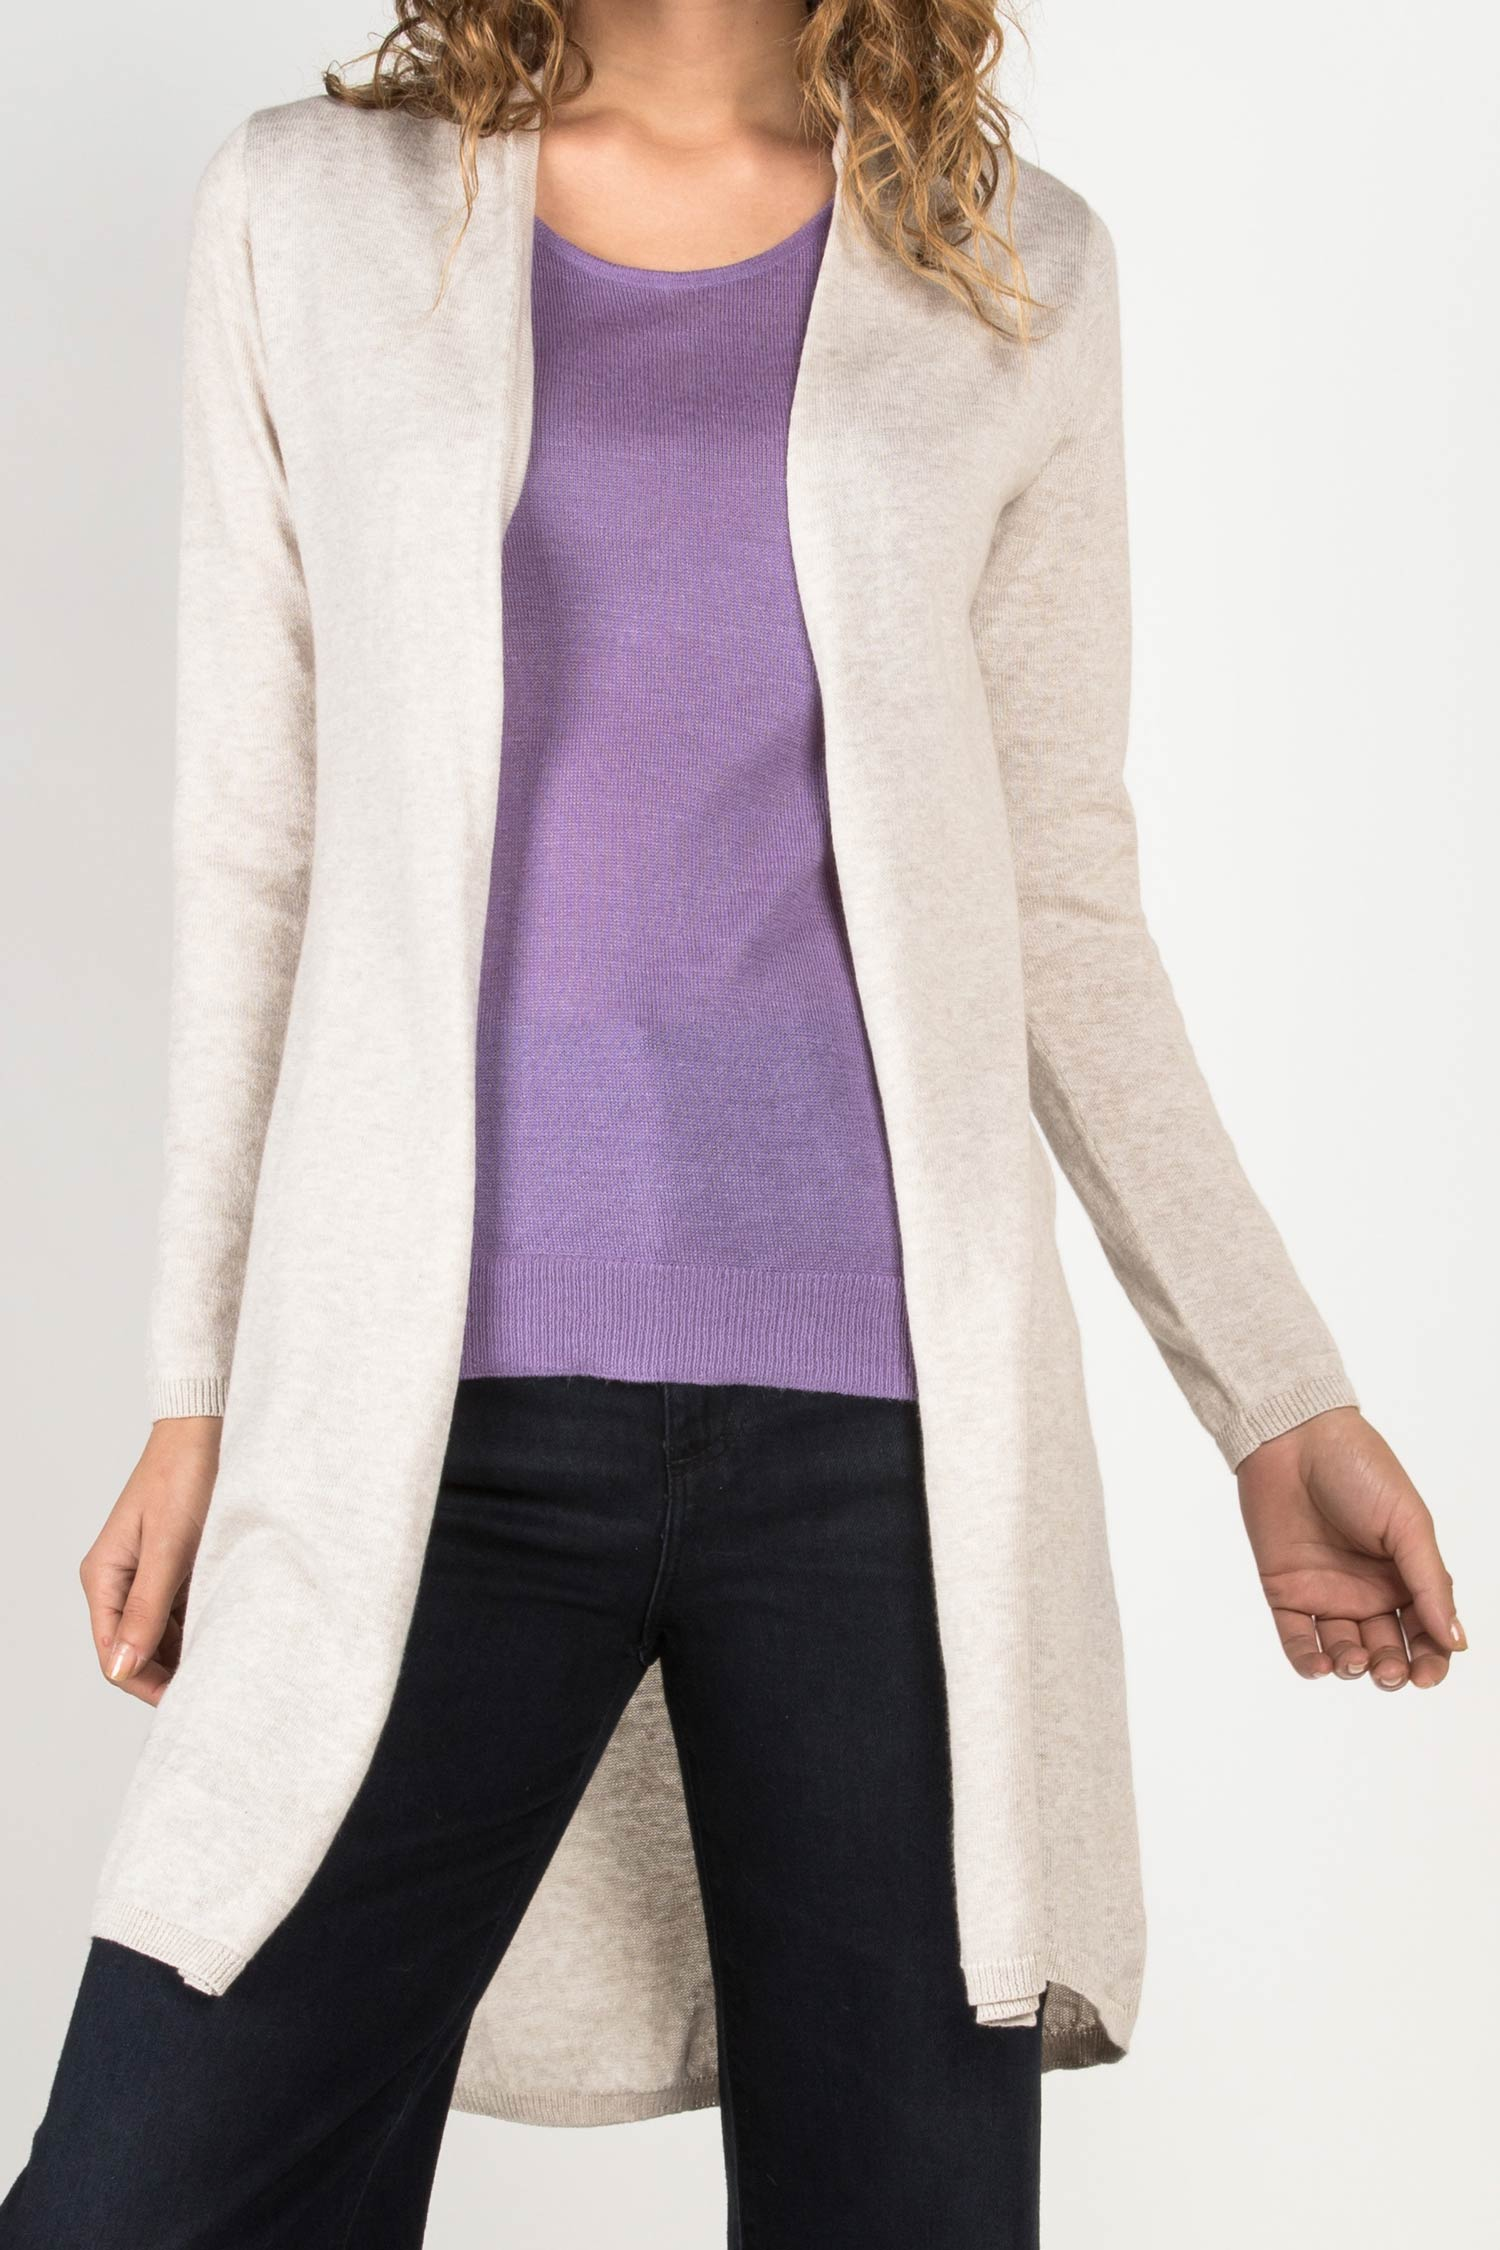 Womens Organic Cotton Sweater | Essential Knit Cardigan | Oatmeal Ivory